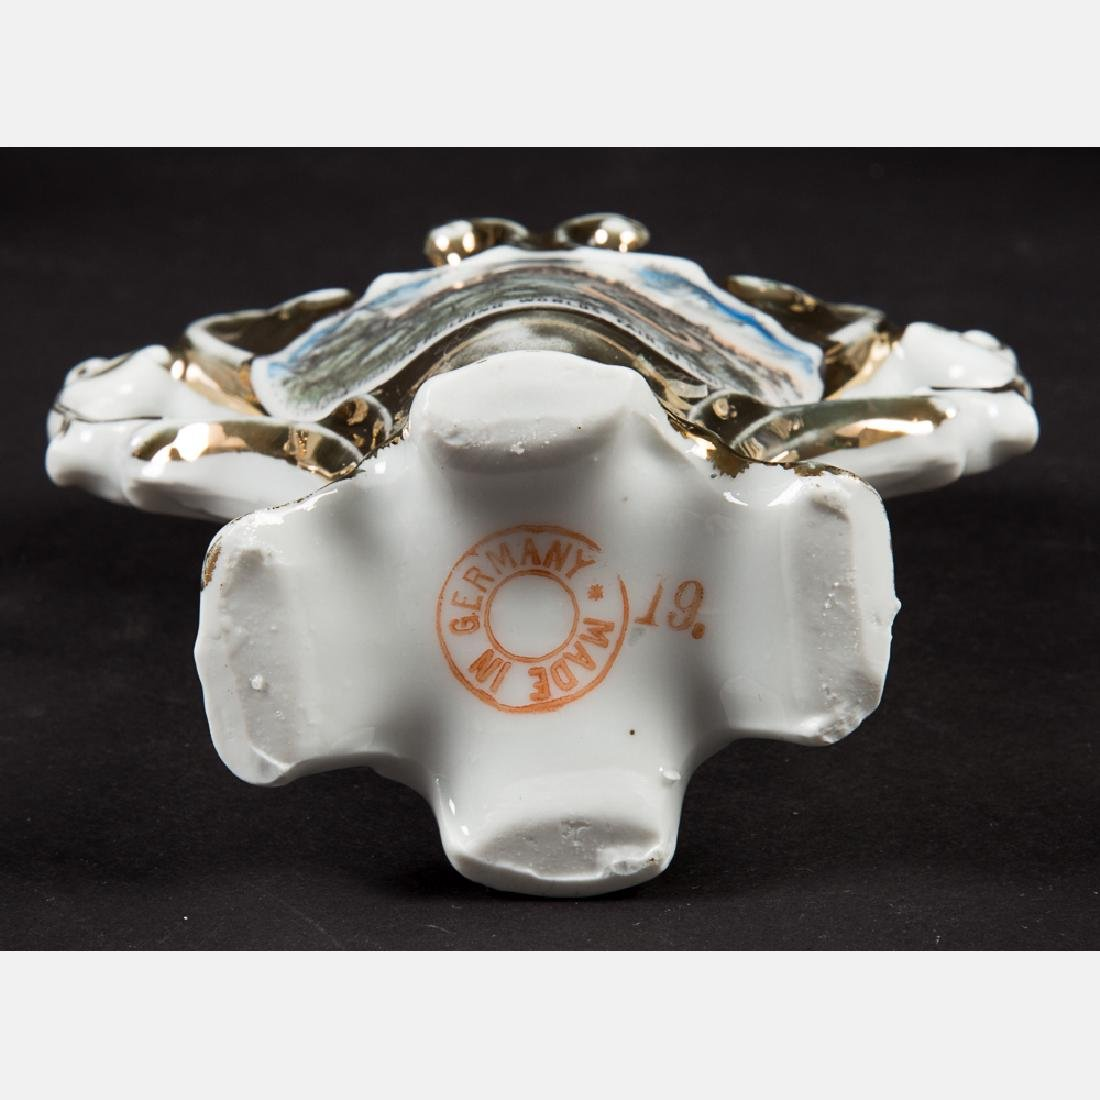 A Group of Six Porcelain Souvenirs from the Louisiana - 5